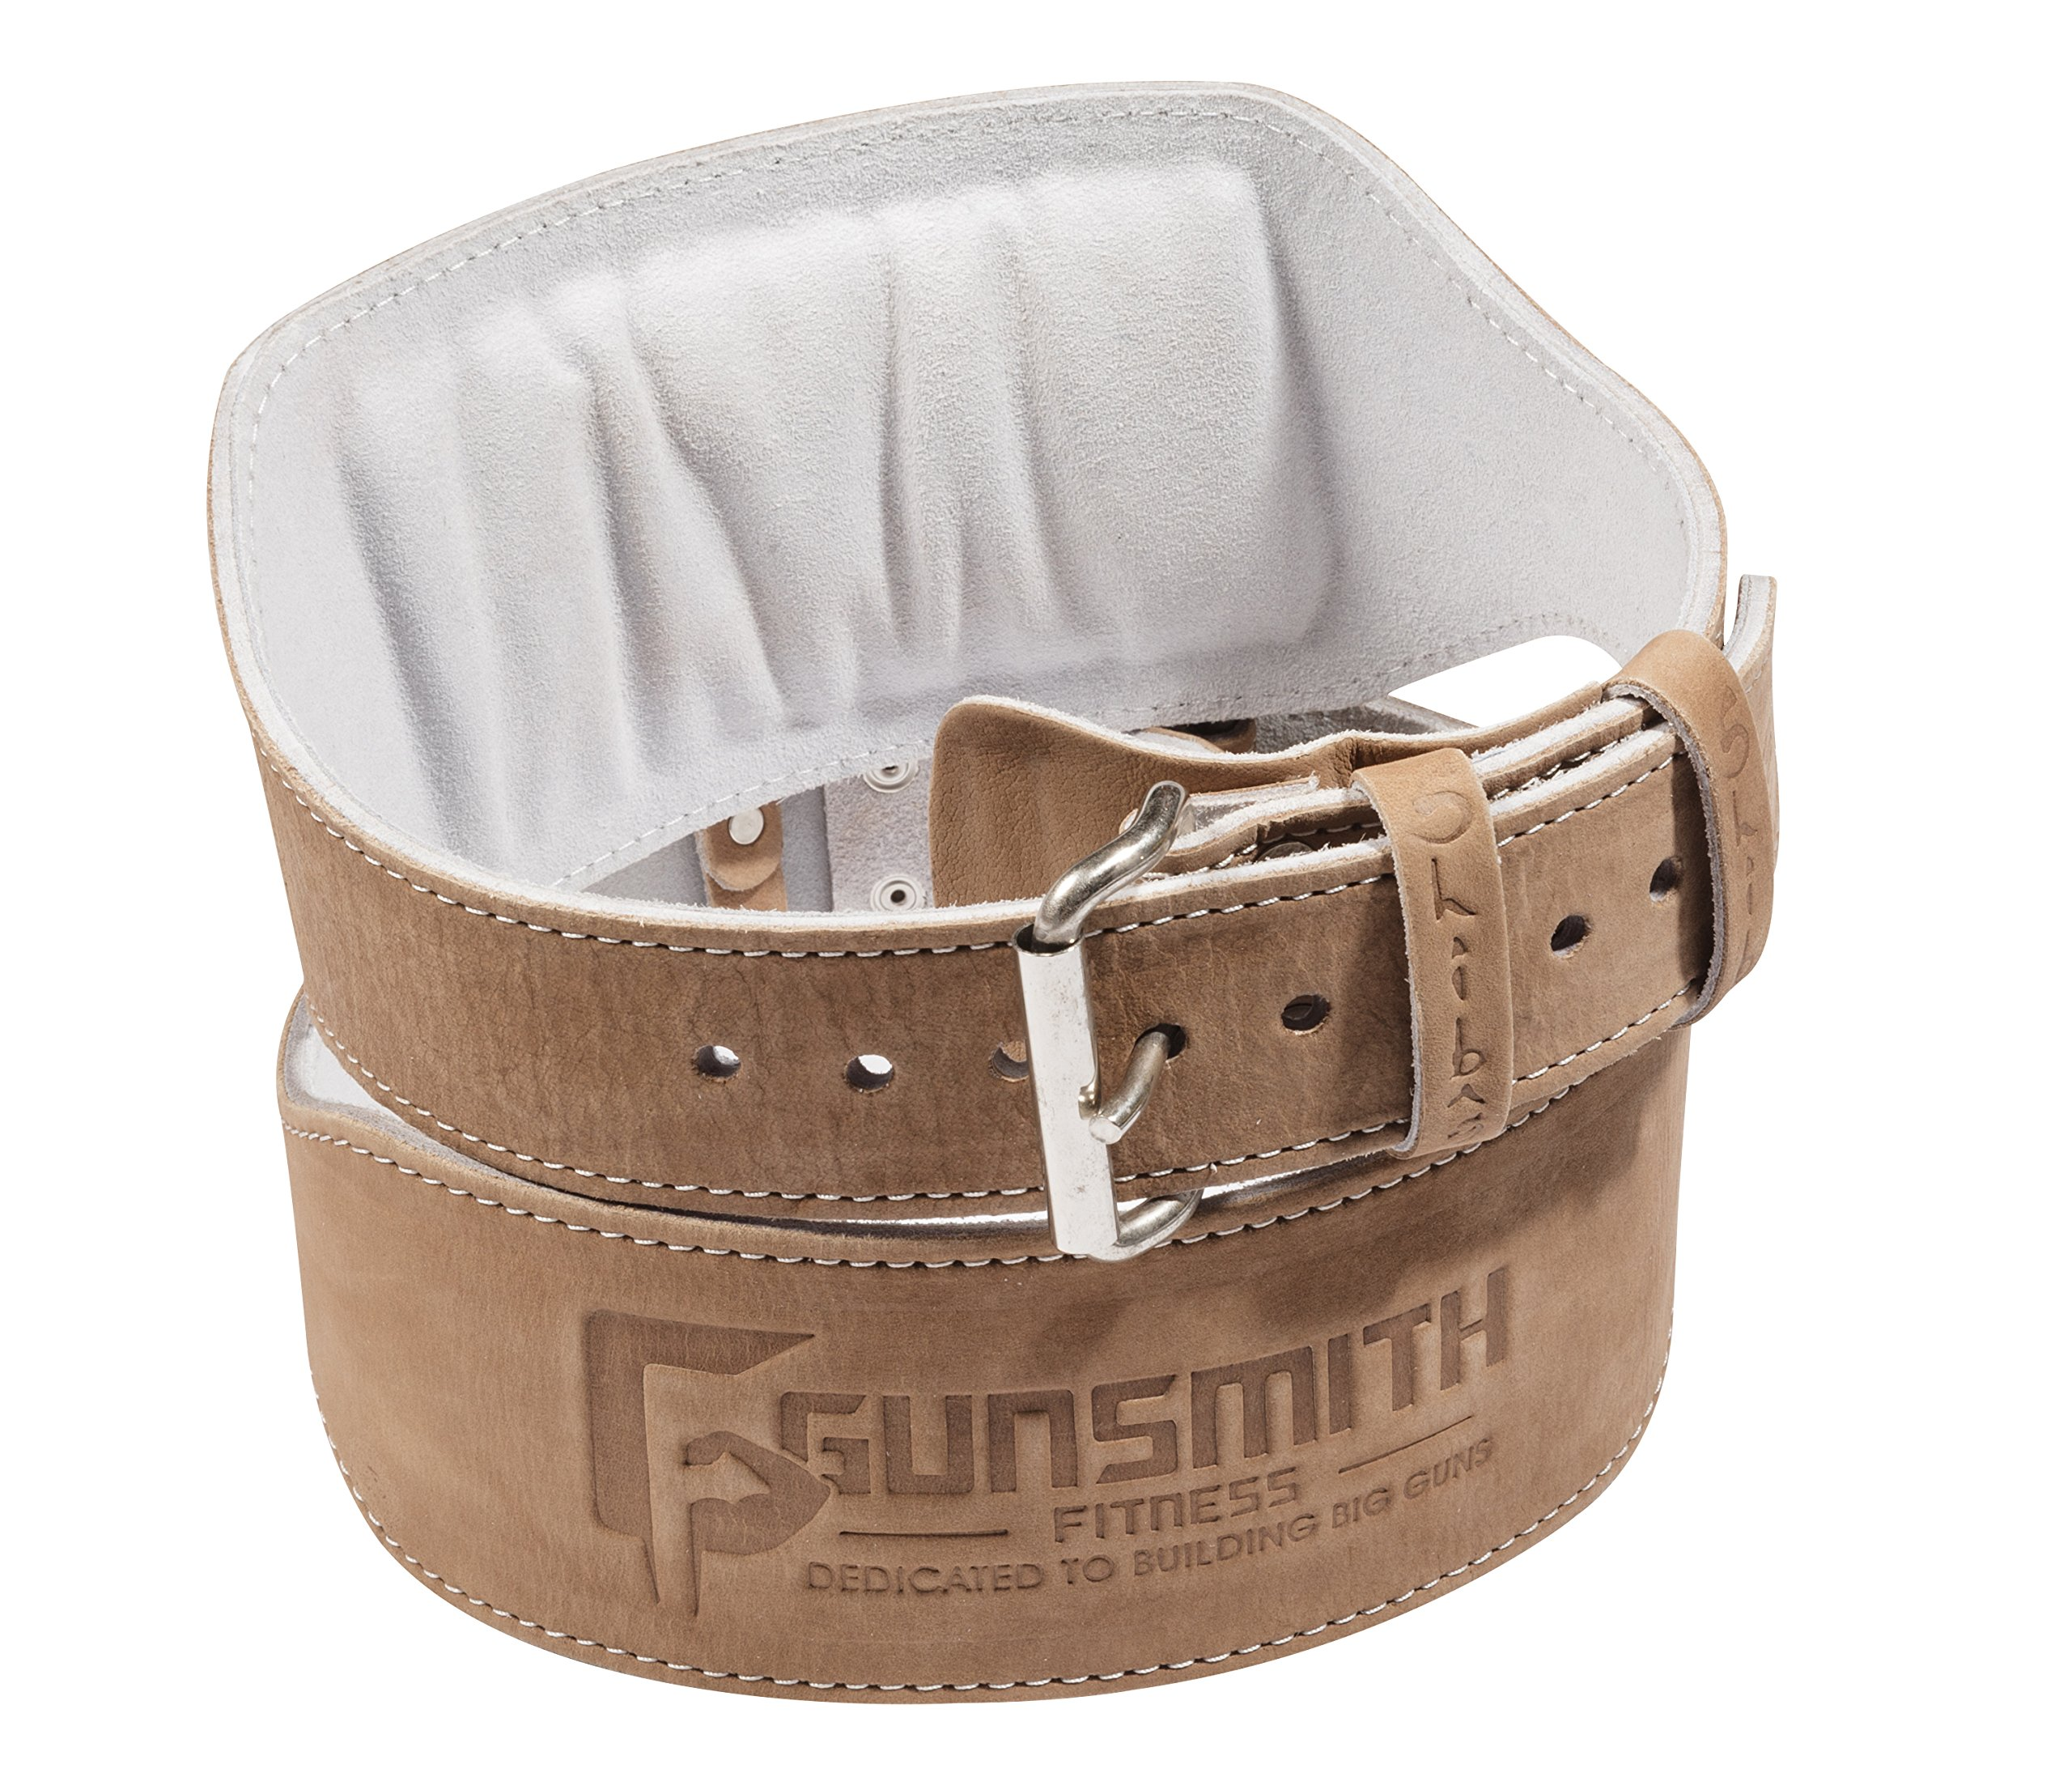 Gunsmith Fitness Premium 100% Real Genuine Leather Individually Handmade, Advanced Weight Lifting, Powerlifting & Bodybuilding (4-Inch width, Medium (Fits 29 - 33 inches))